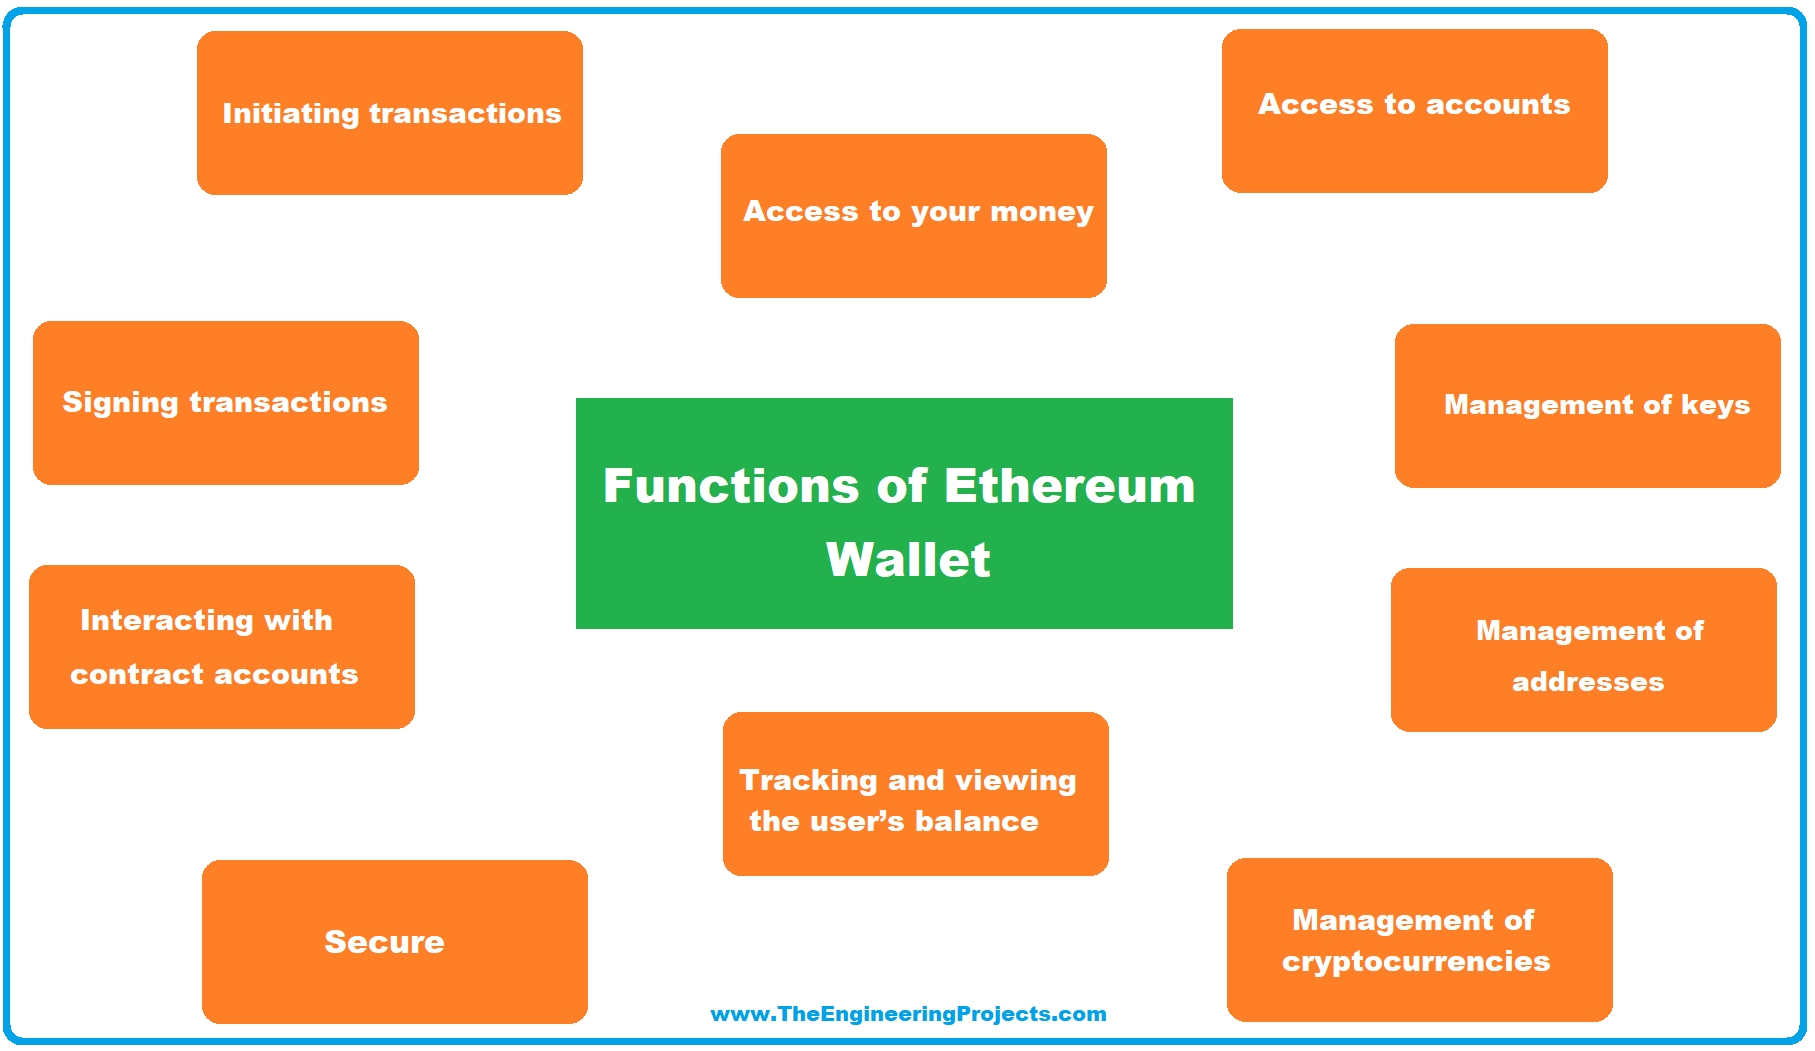 Ethereum Wallet, blockchain wallet, feature of wallets, Key Management in Wallet, Wallet Design, Types of Wallet, Finding a Wallet